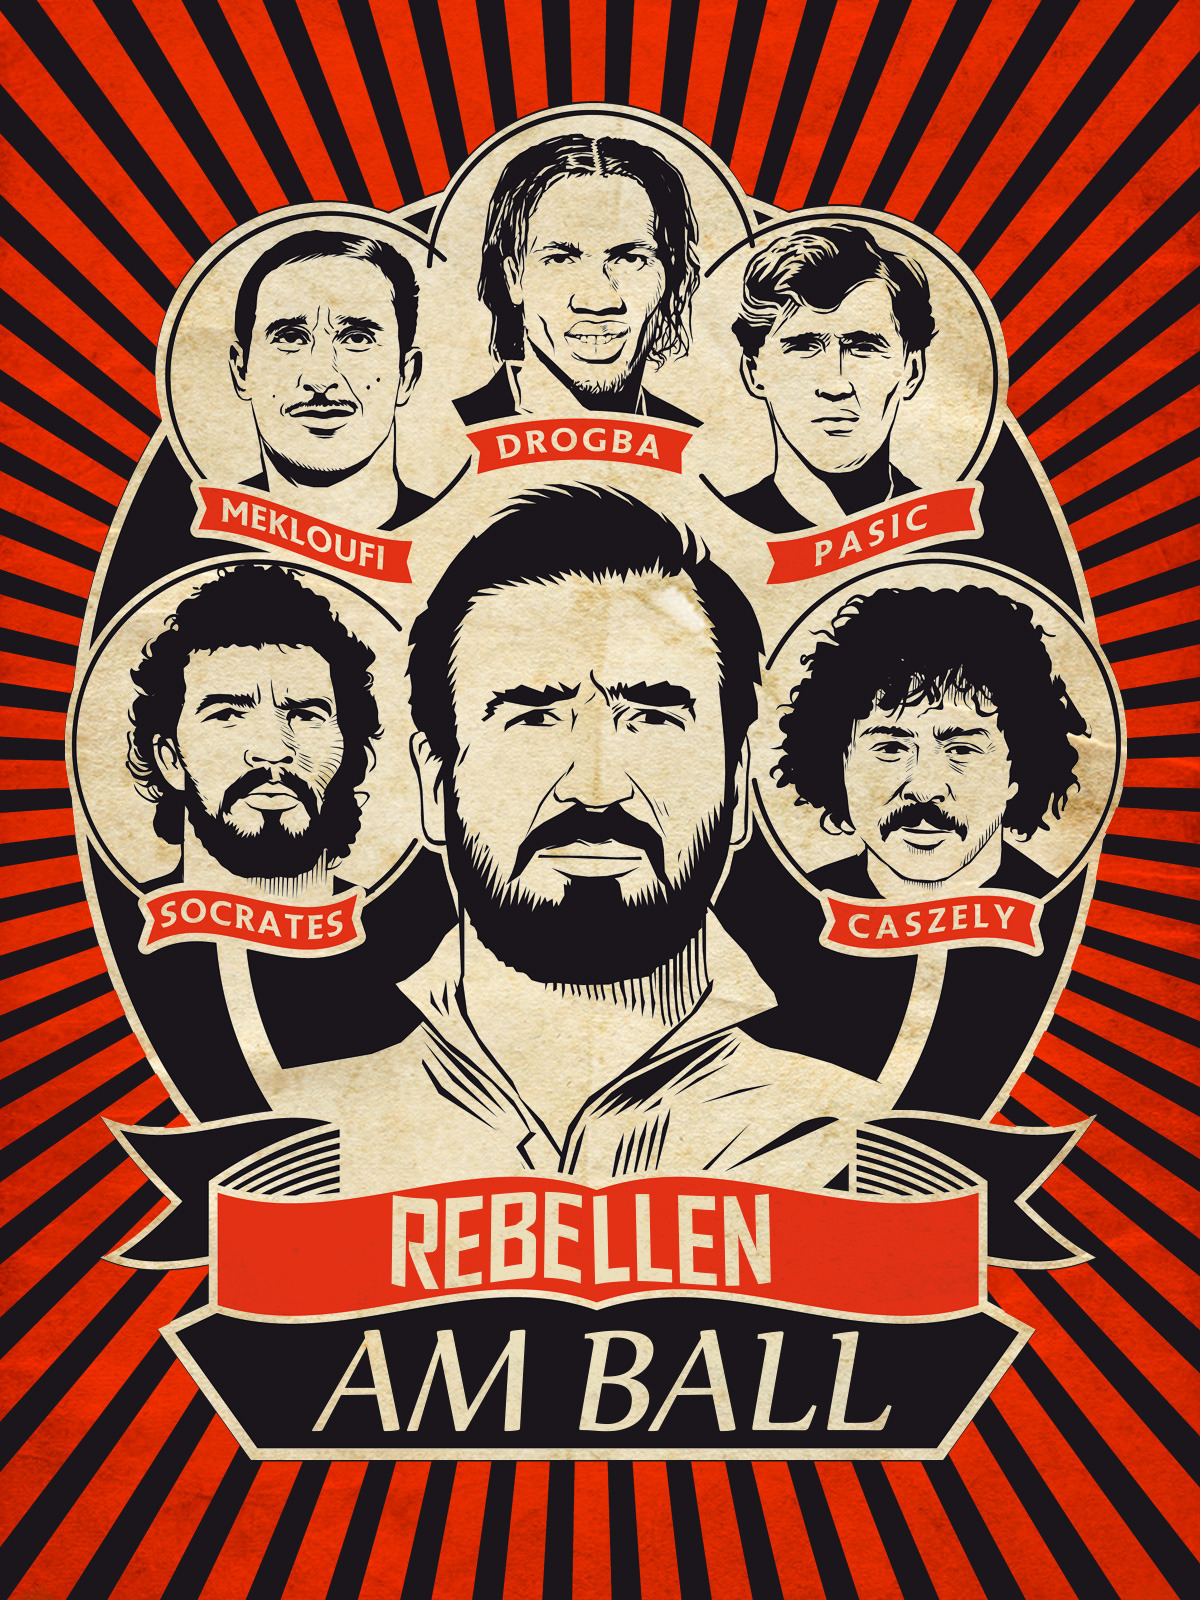 Rebellen am Ball